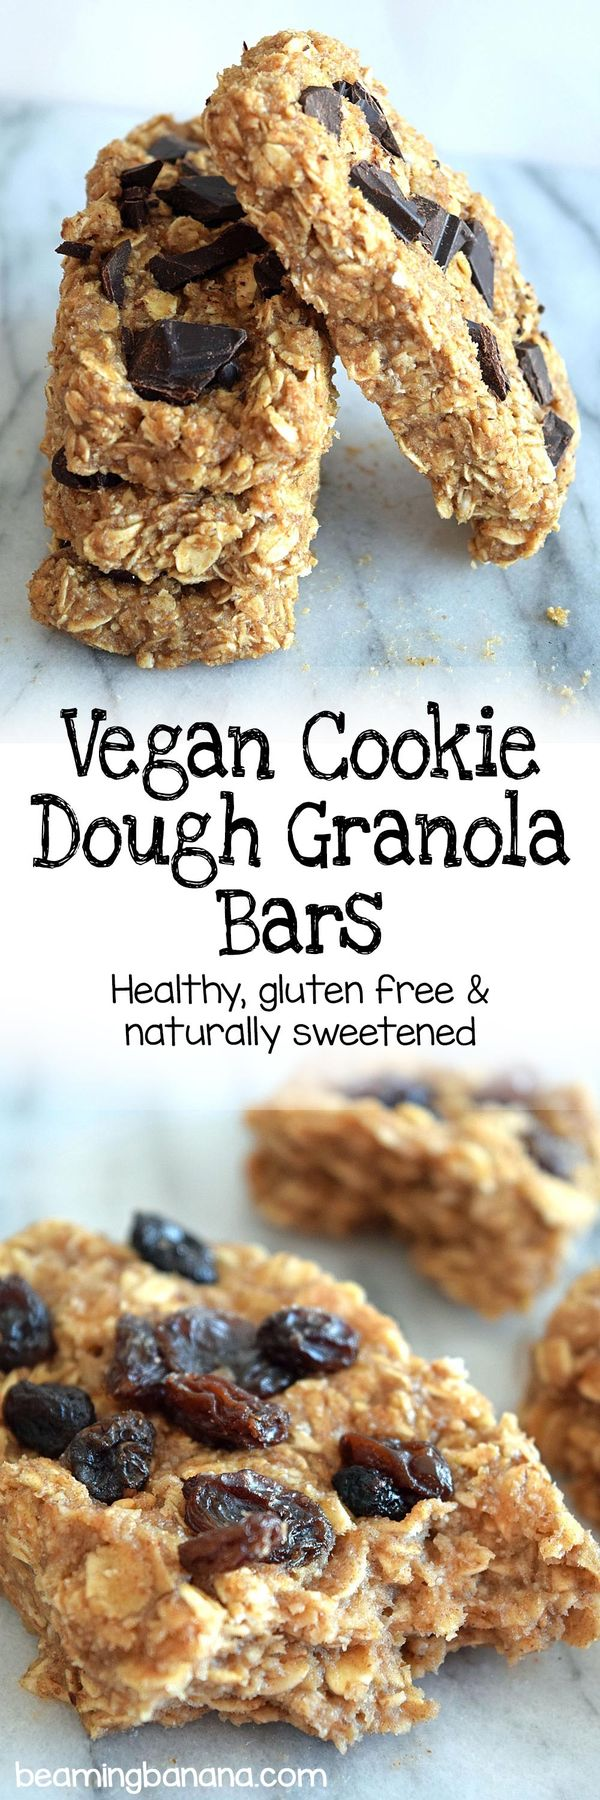 Vegan cookie dough granola bars are chewy, rich, and loaded with chocolate or raisins! Such a wonderful sweet snack, breakfast, or dessert. This recipe is gluten free and sweetened naturally!